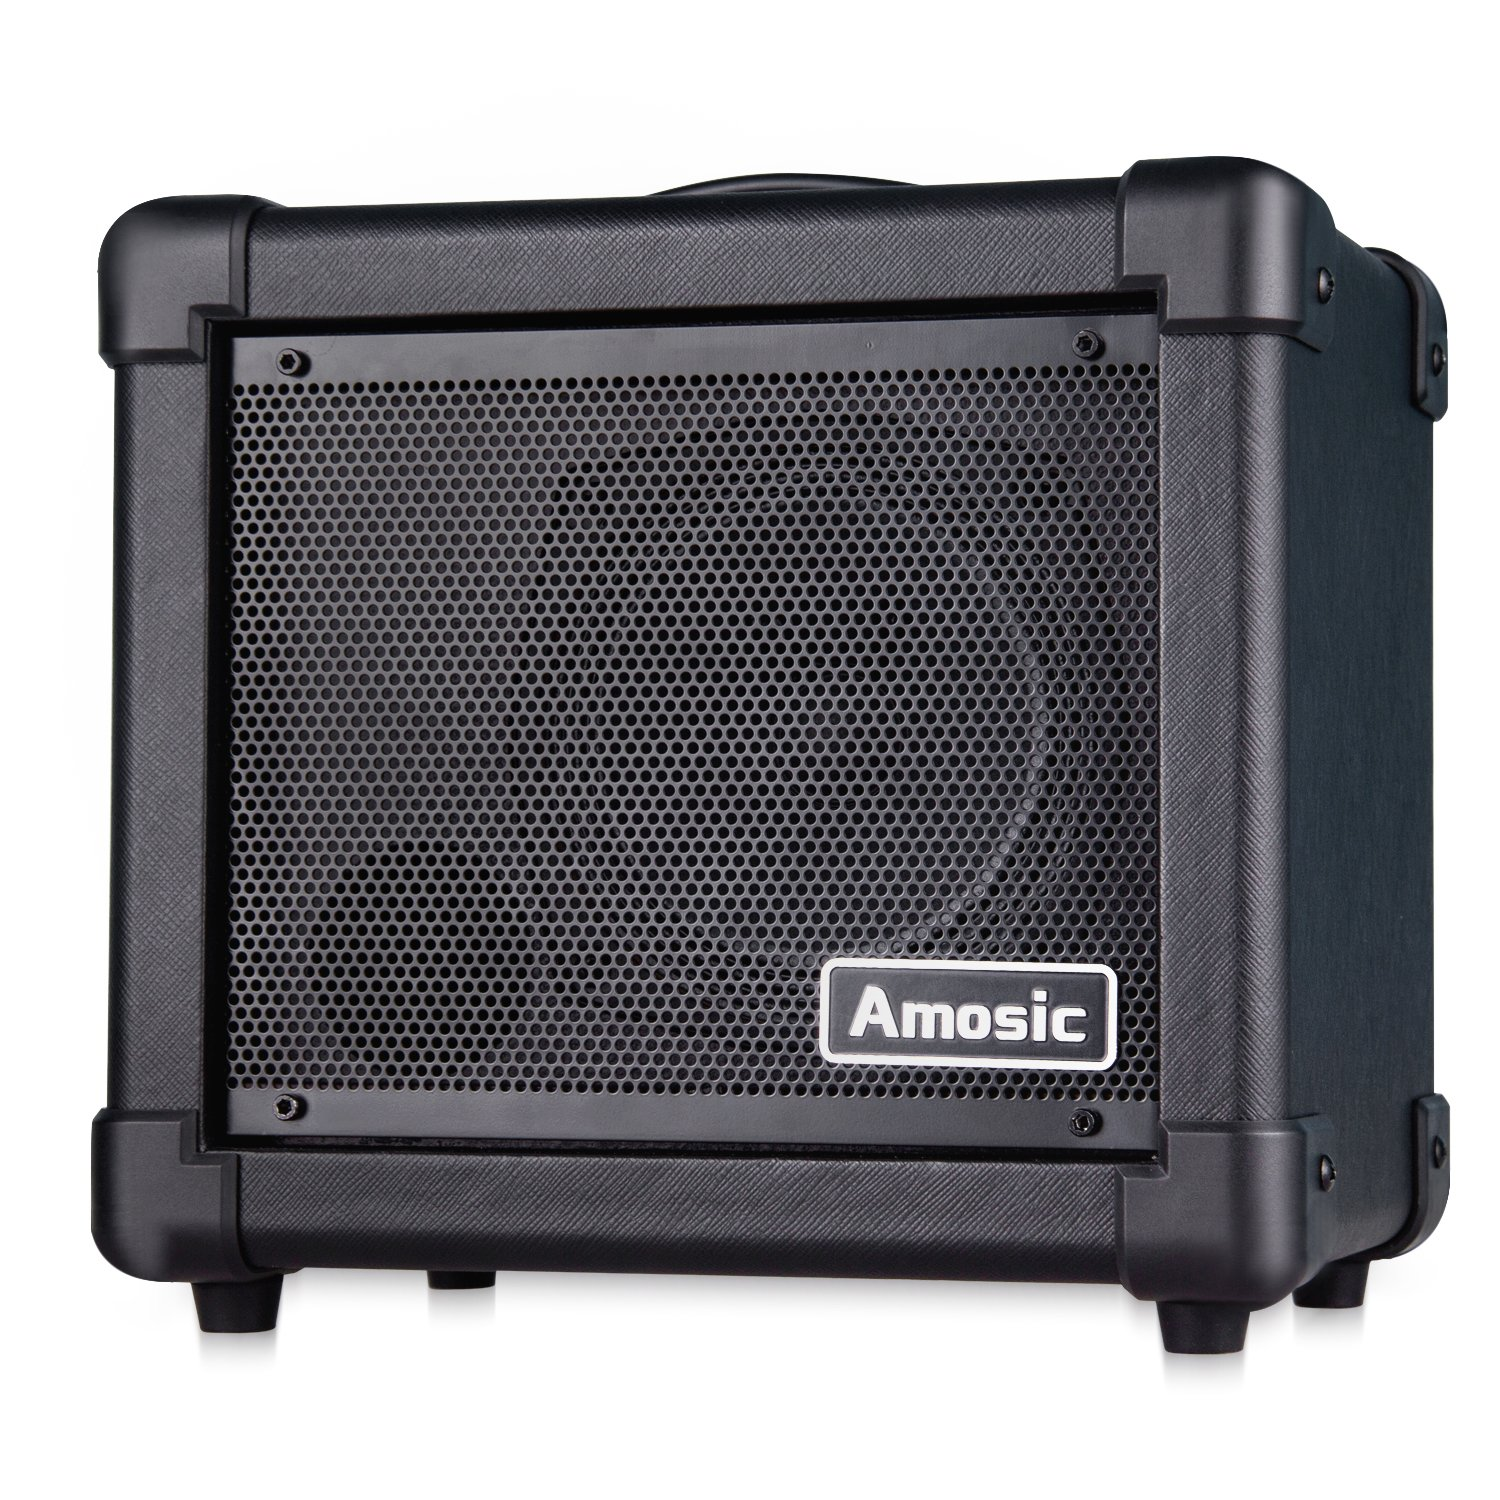 amosic guitar amplifier 10w for electric guitar household bluetooth mini amp power supply by. Black Bedroom Furniture Sets. Home Design Ideas